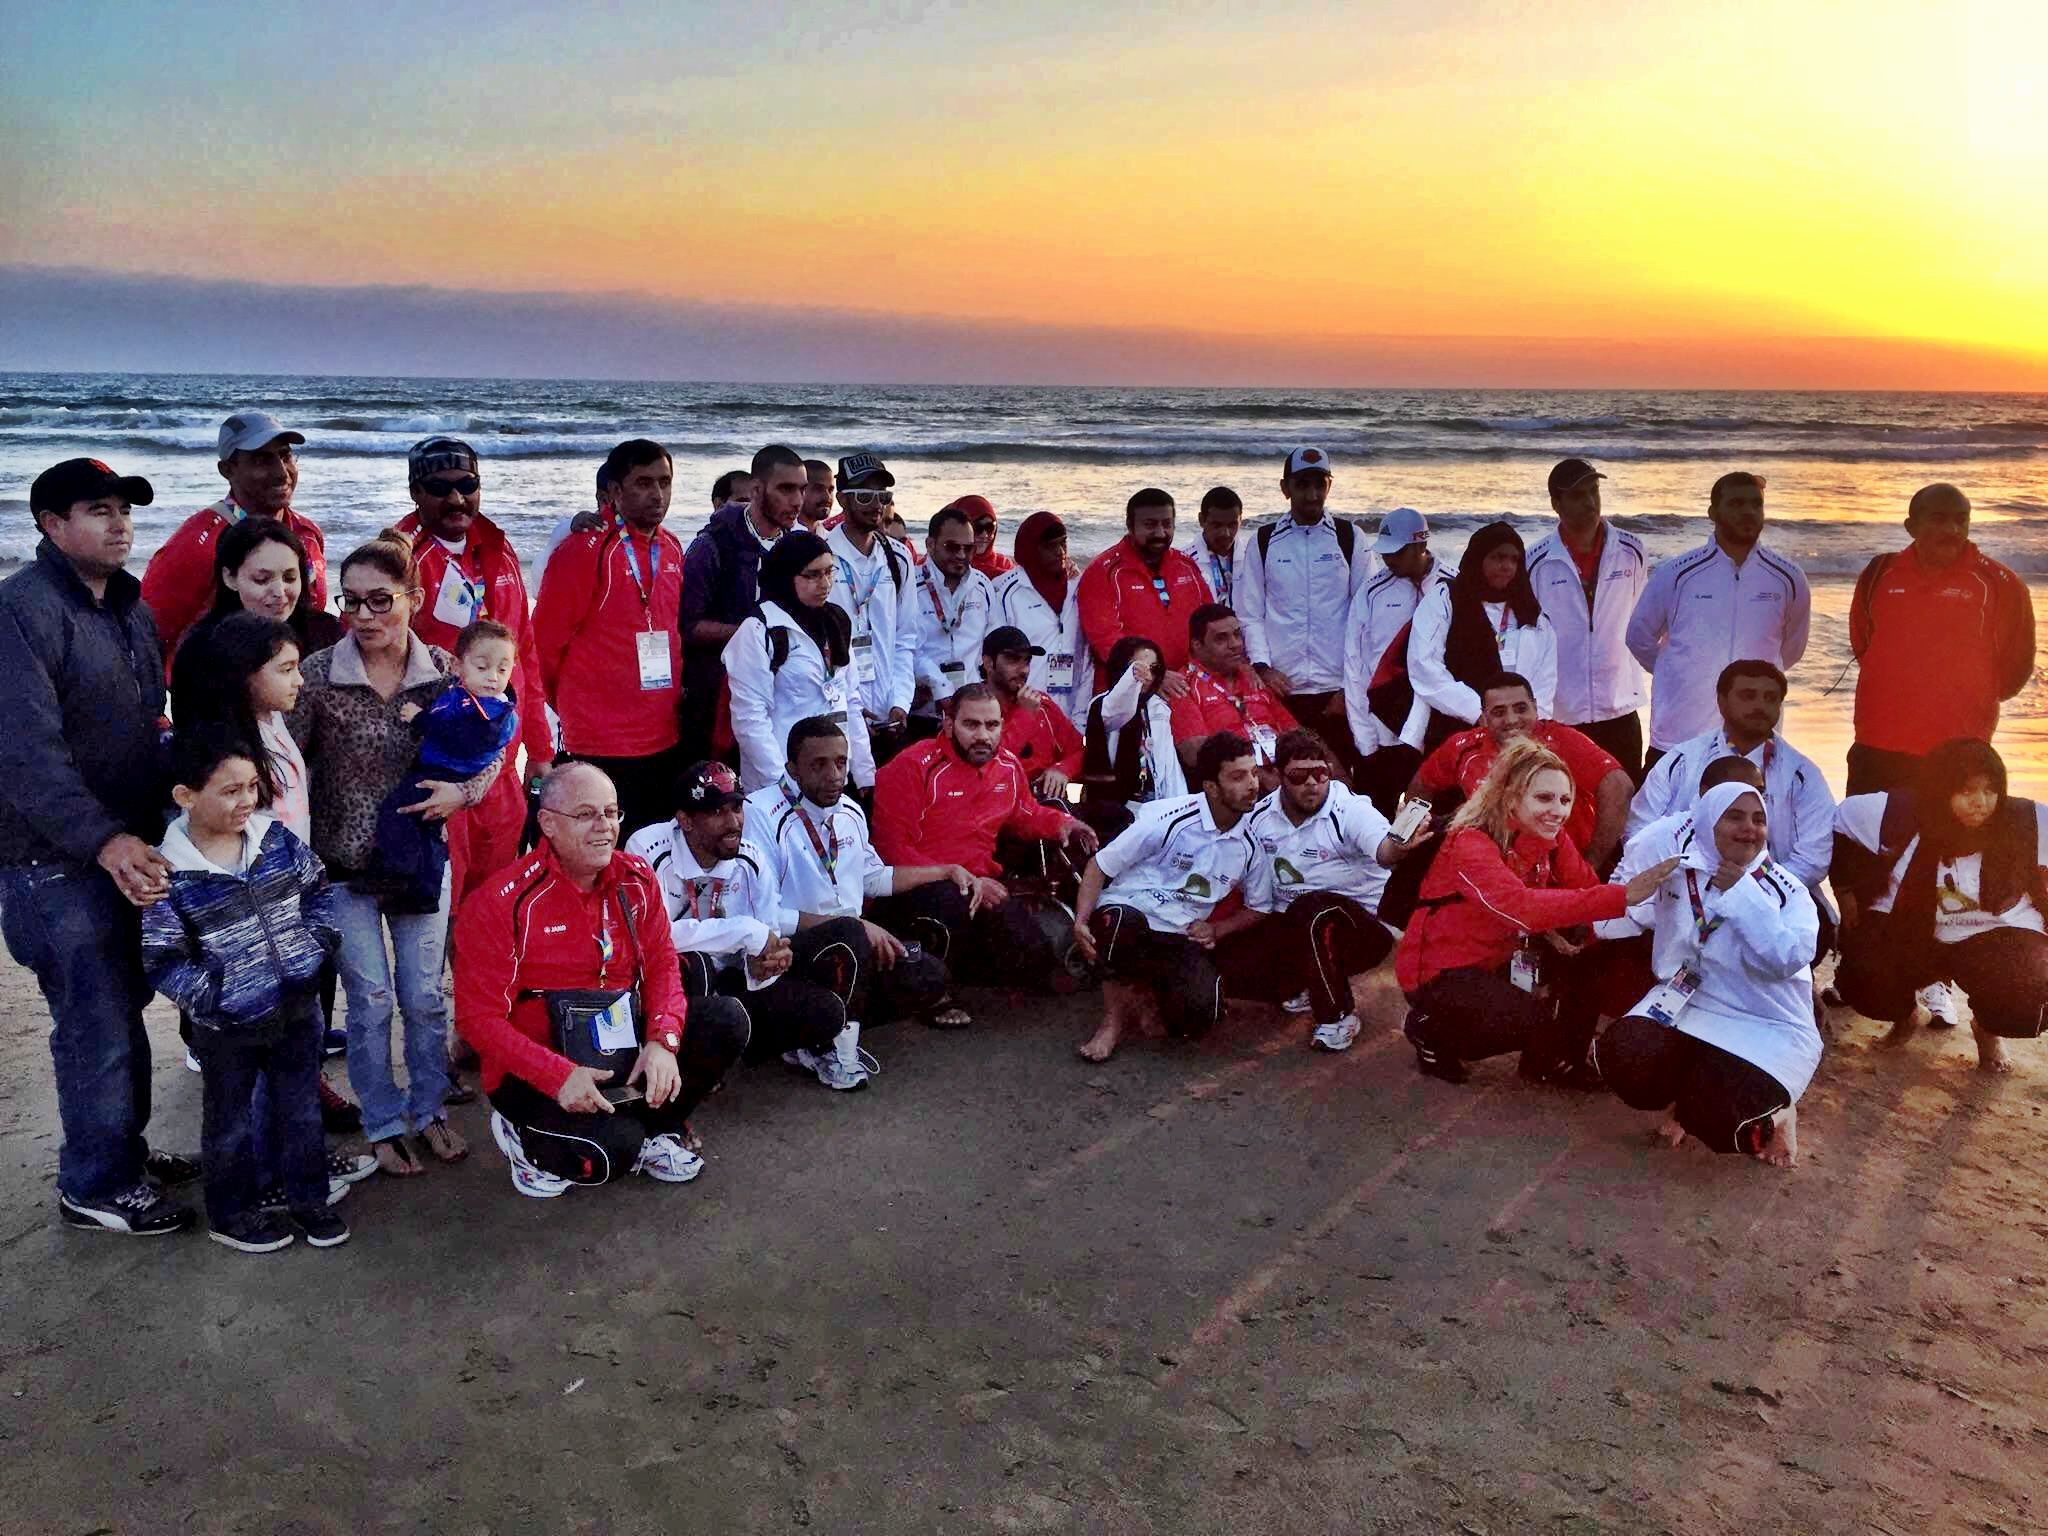 In Honor Of The Special Olympics World Games Los Angeles 2015 Pismo Beach Grover Beach Hosted Over 80 Members From The With Images Grover Beach Pismo Beach Beach Events